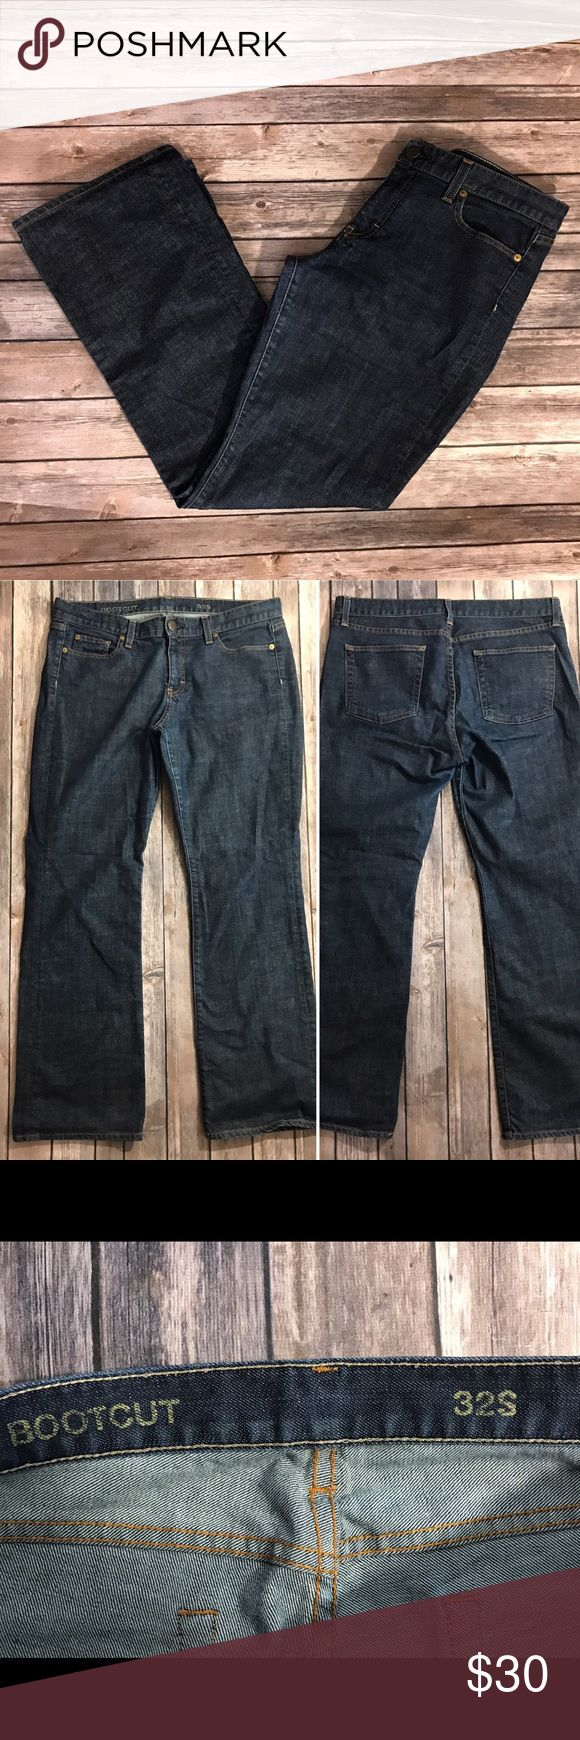 J Crew Womens Bootcut Jeans Size 32 S Dark Blue J Crew Womens Bootcut Jeans Size 32 S Dark Blue Denim Pants. Measurements: (in inches) - Waist: 36 - Length: 40 -Inseam: 30 J. Crew Jeans Boot Cut